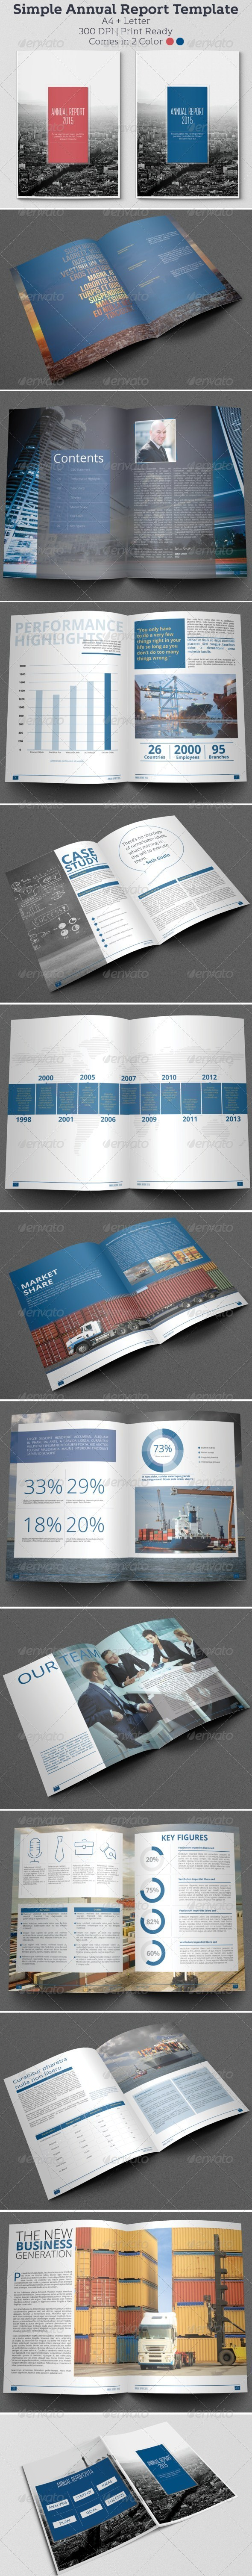 Simple Annual Report Template by hossaine – Simple Annual Report Template